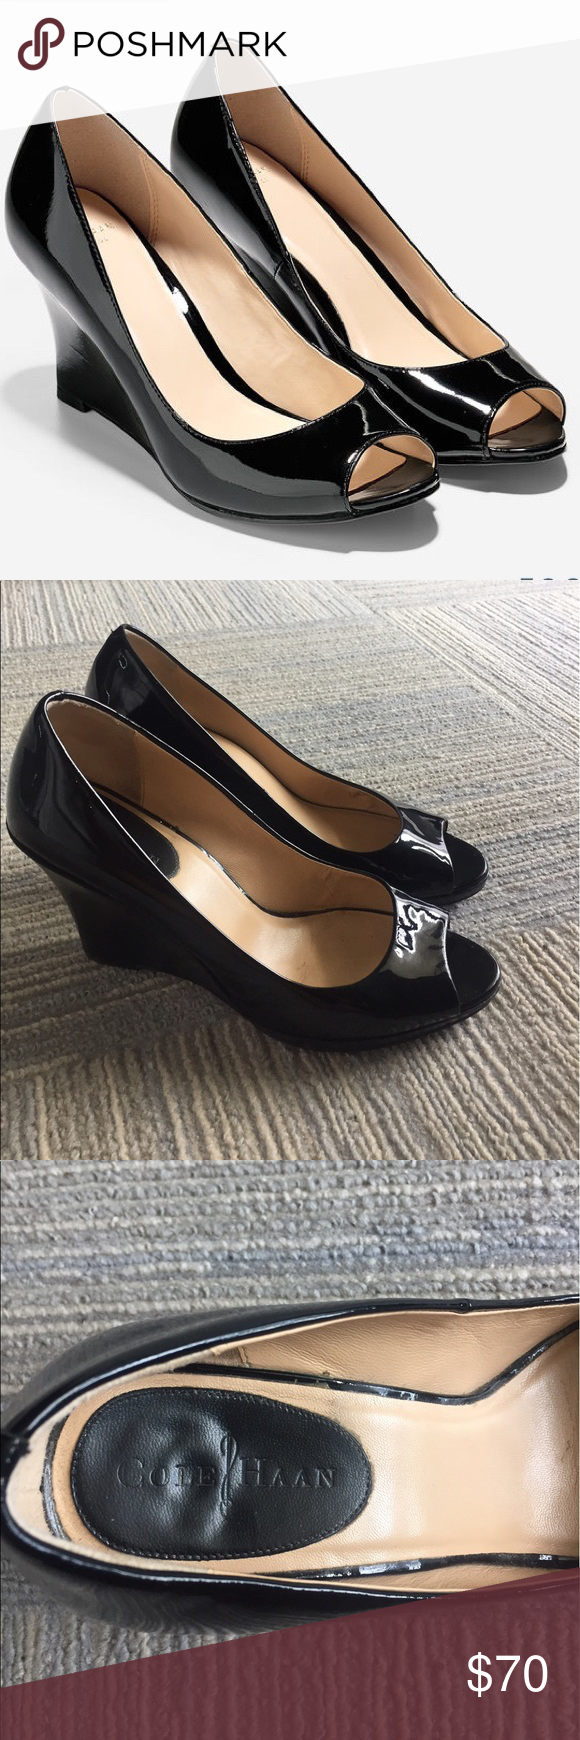 Cole Haan Patent Leather Peep Toe Wedge Pumps